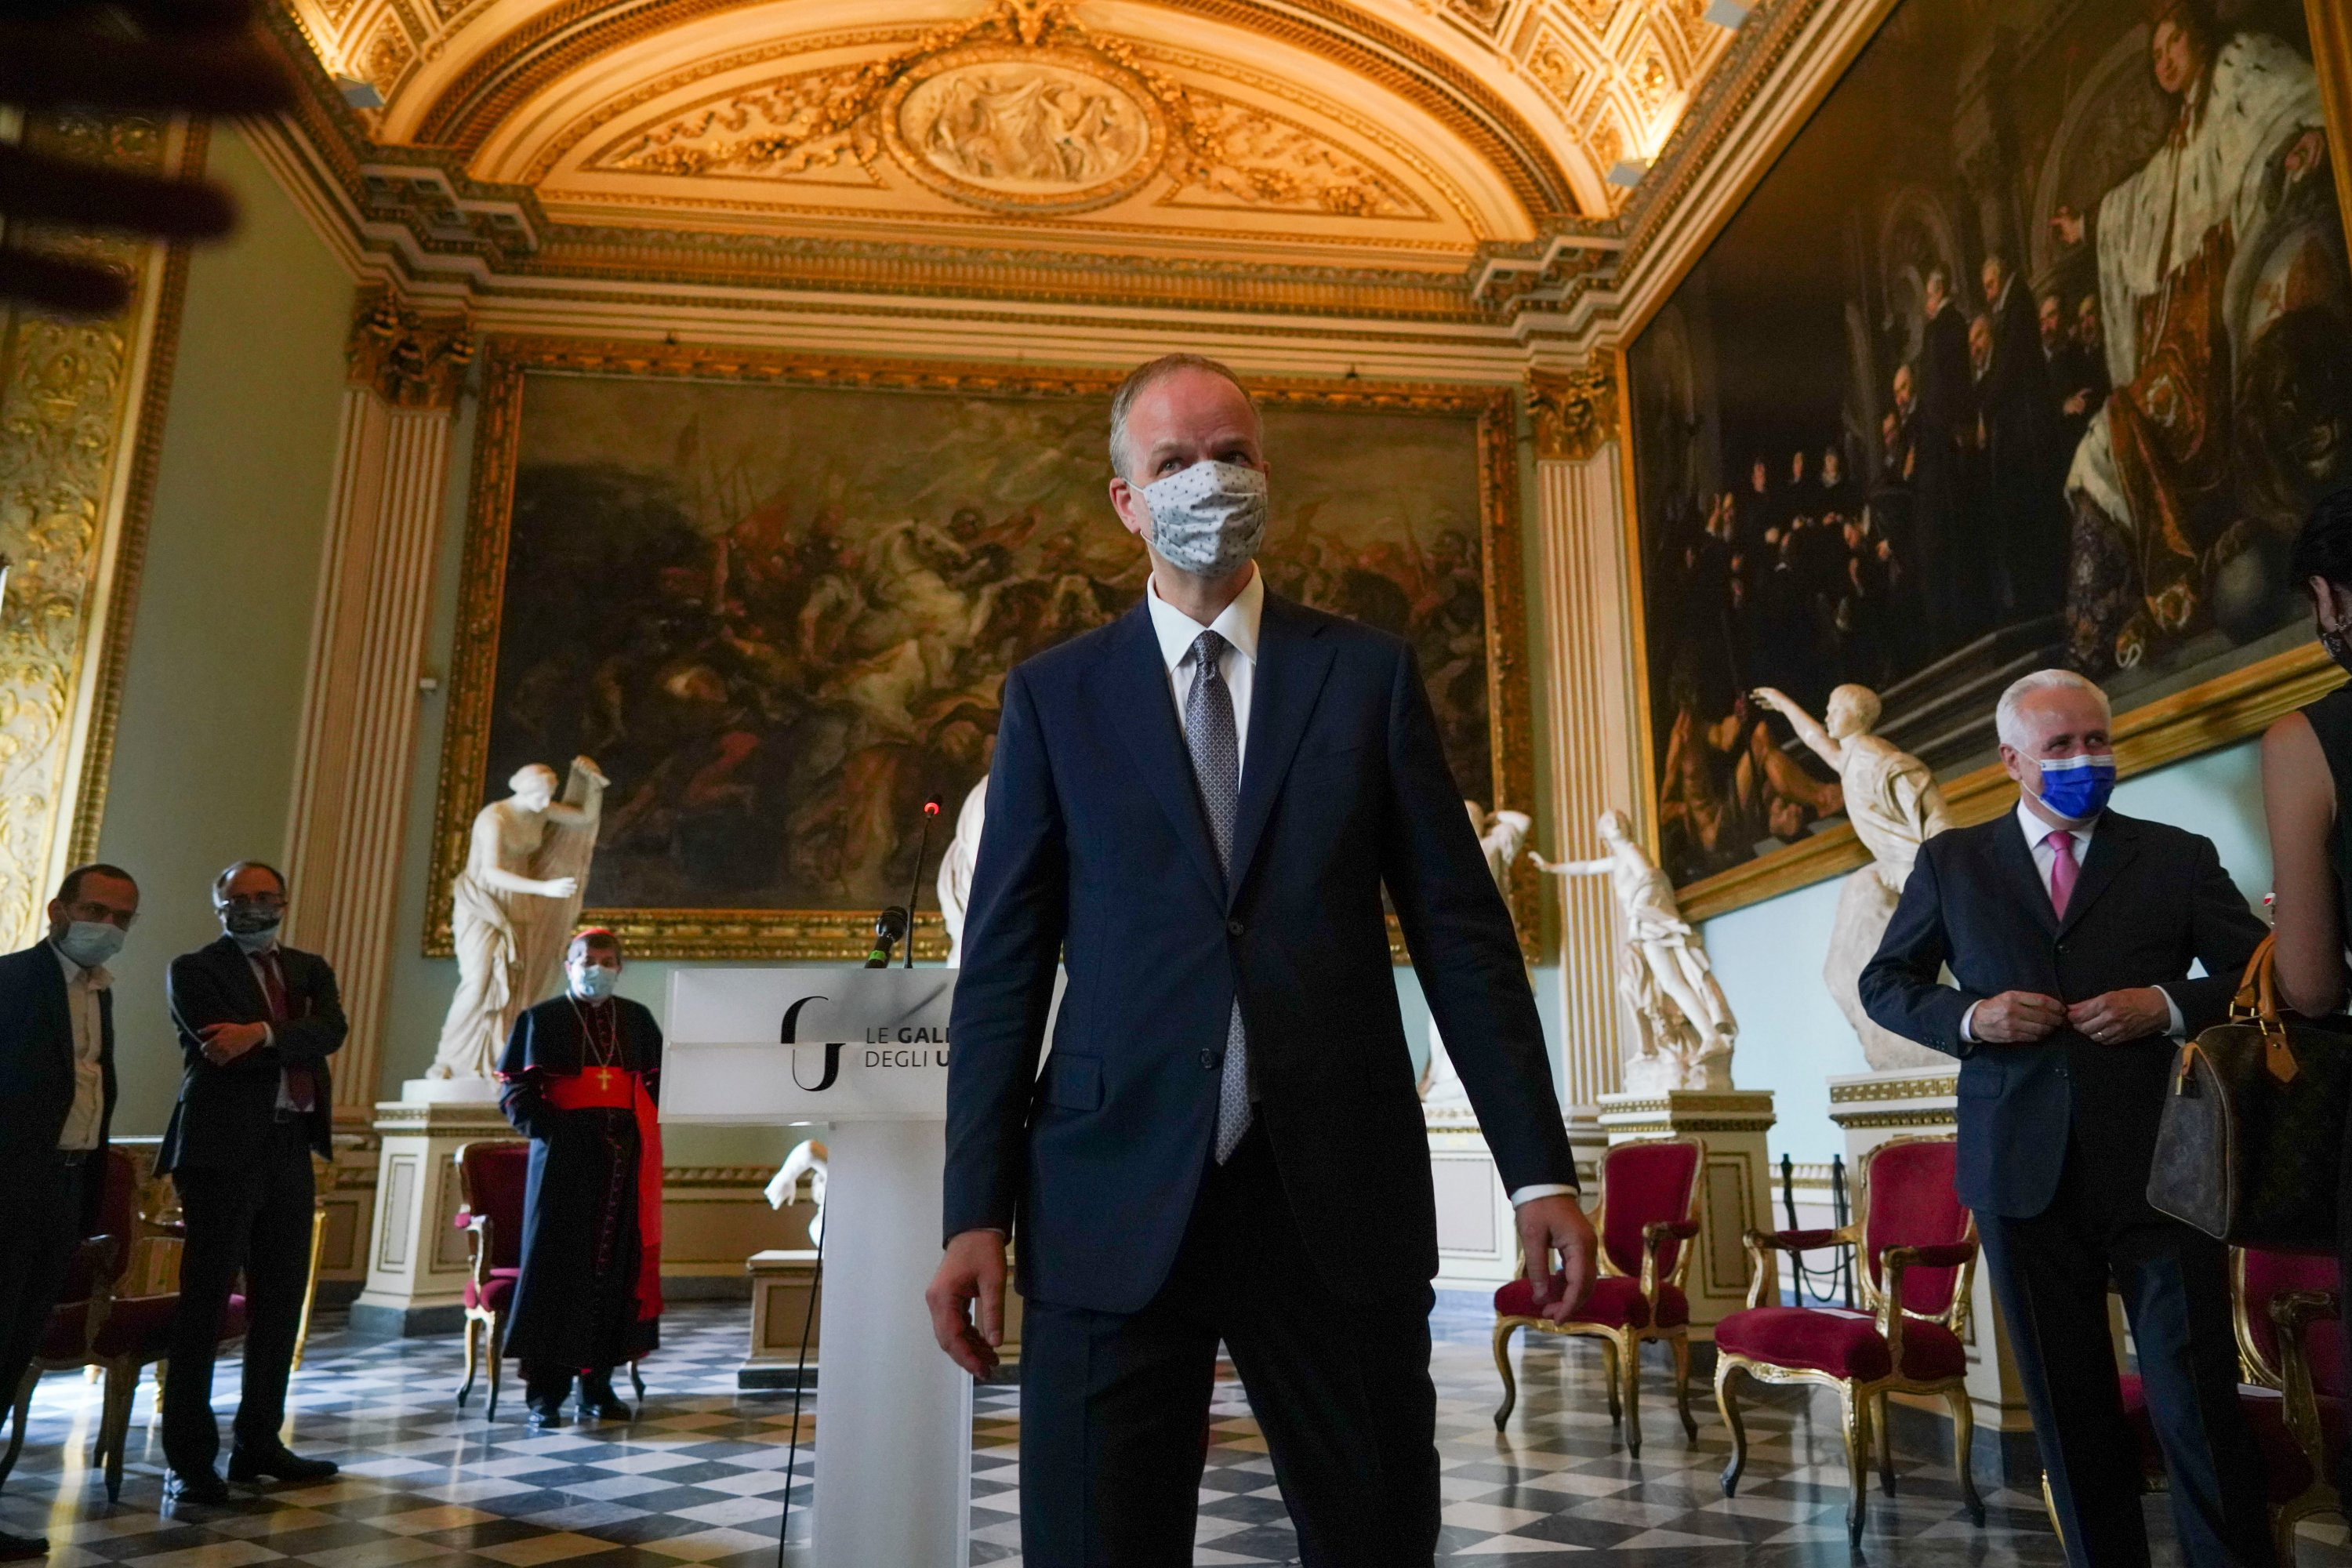 Uffizi Gallery museum director Eike Schmidt wears a face mask to prevent the spread of COVID-19 as he poses for photographers on the reopening day of the museum, in Florence, Wednesday, June 3, 2020. (AP PHOTO)